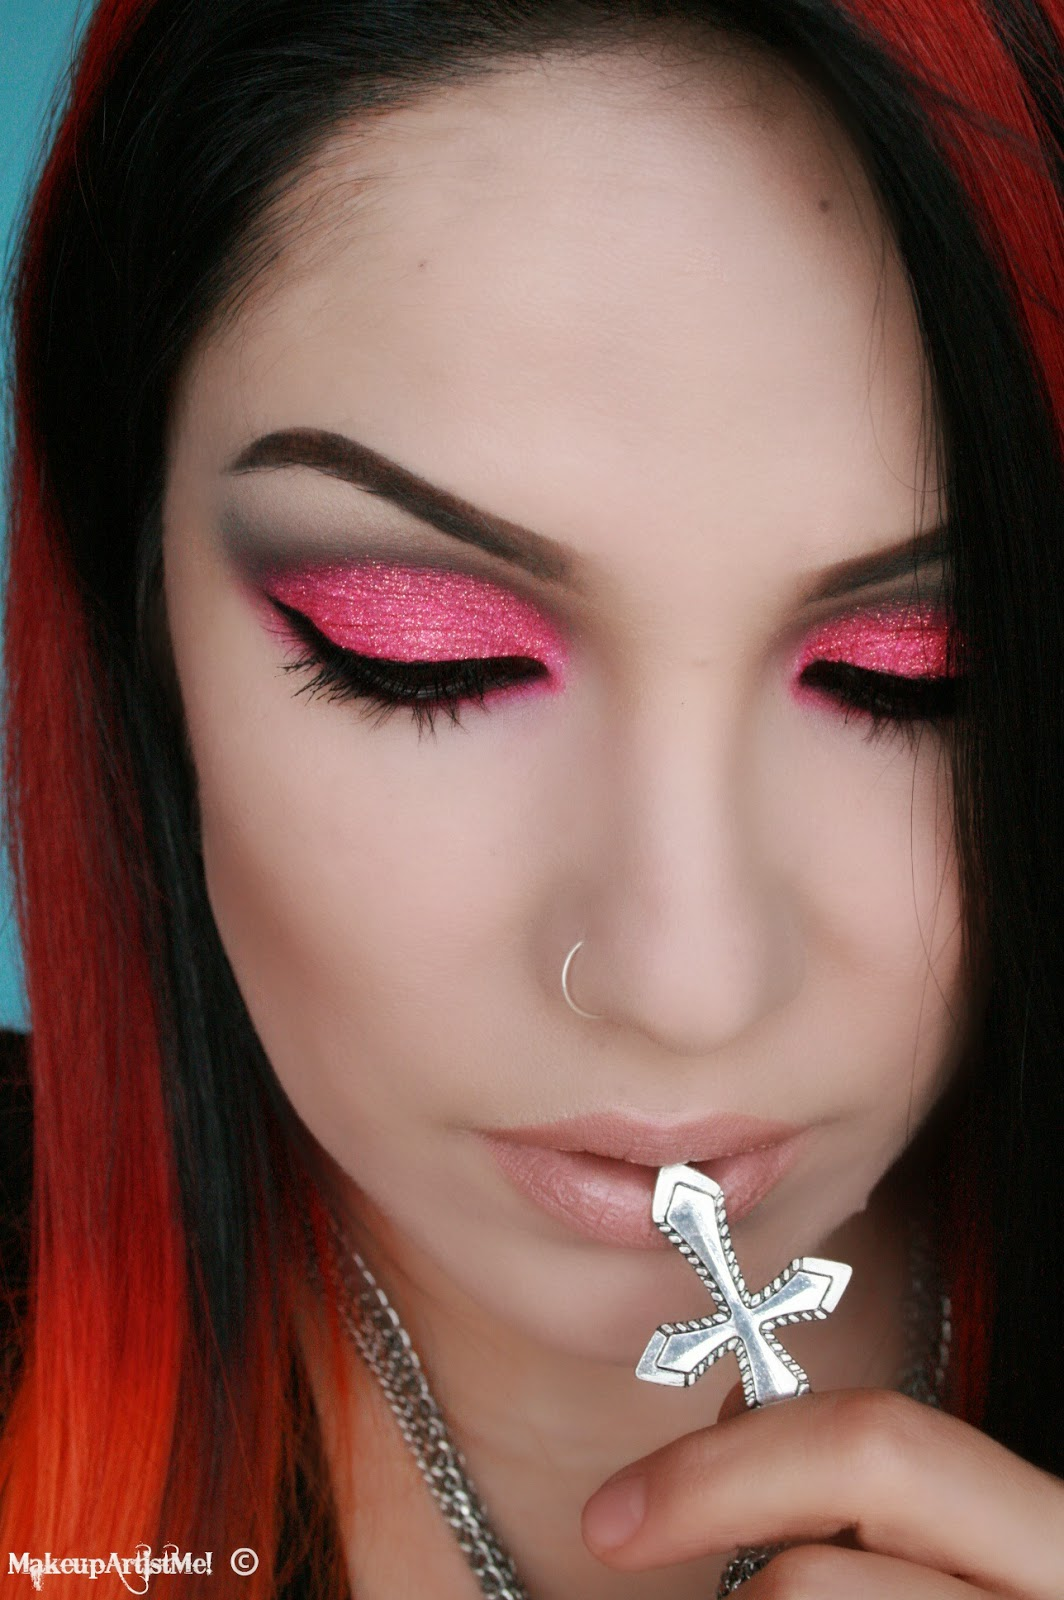 Make Up Tutorials Youtube: Make-up Artist Me!: Hot For Pink! Makeup Tutorial